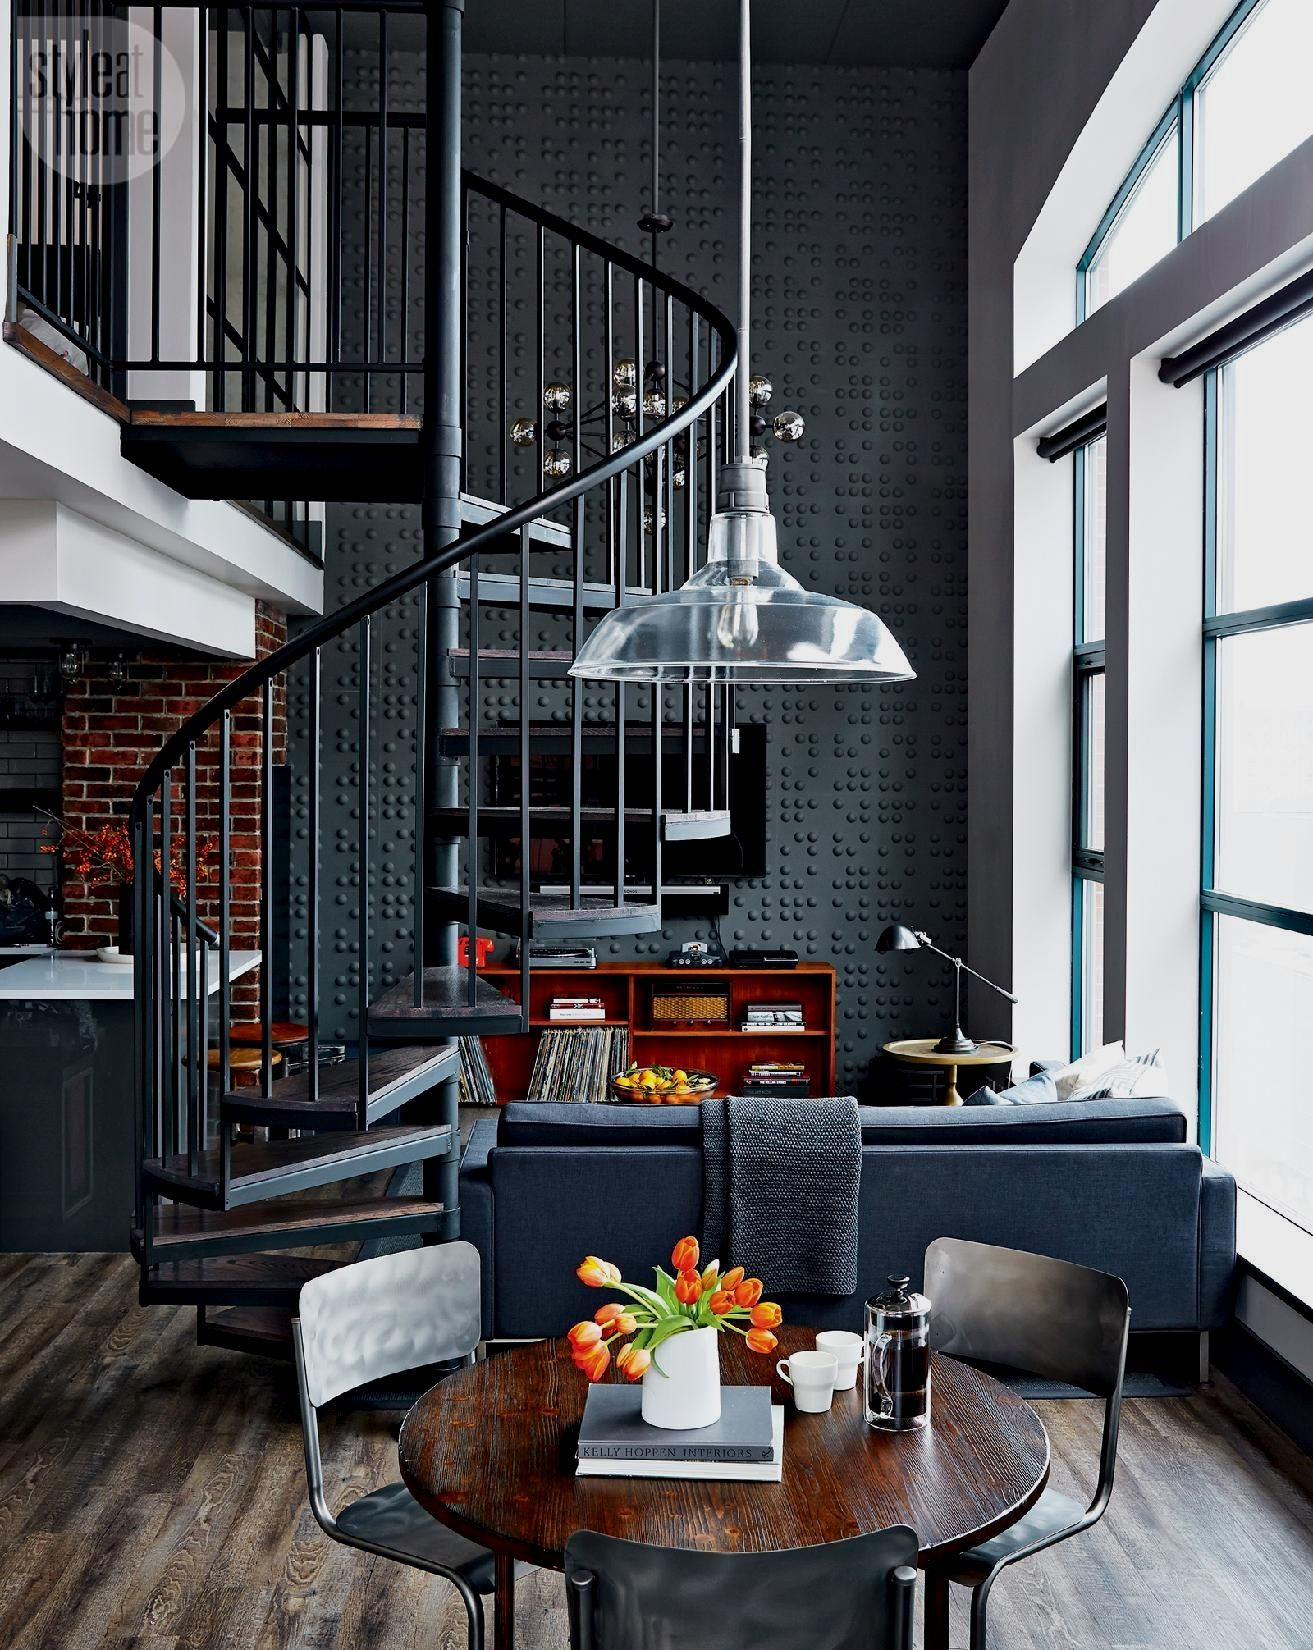 Awesome Vintage Industrial Decor Designs For Your Urban Living